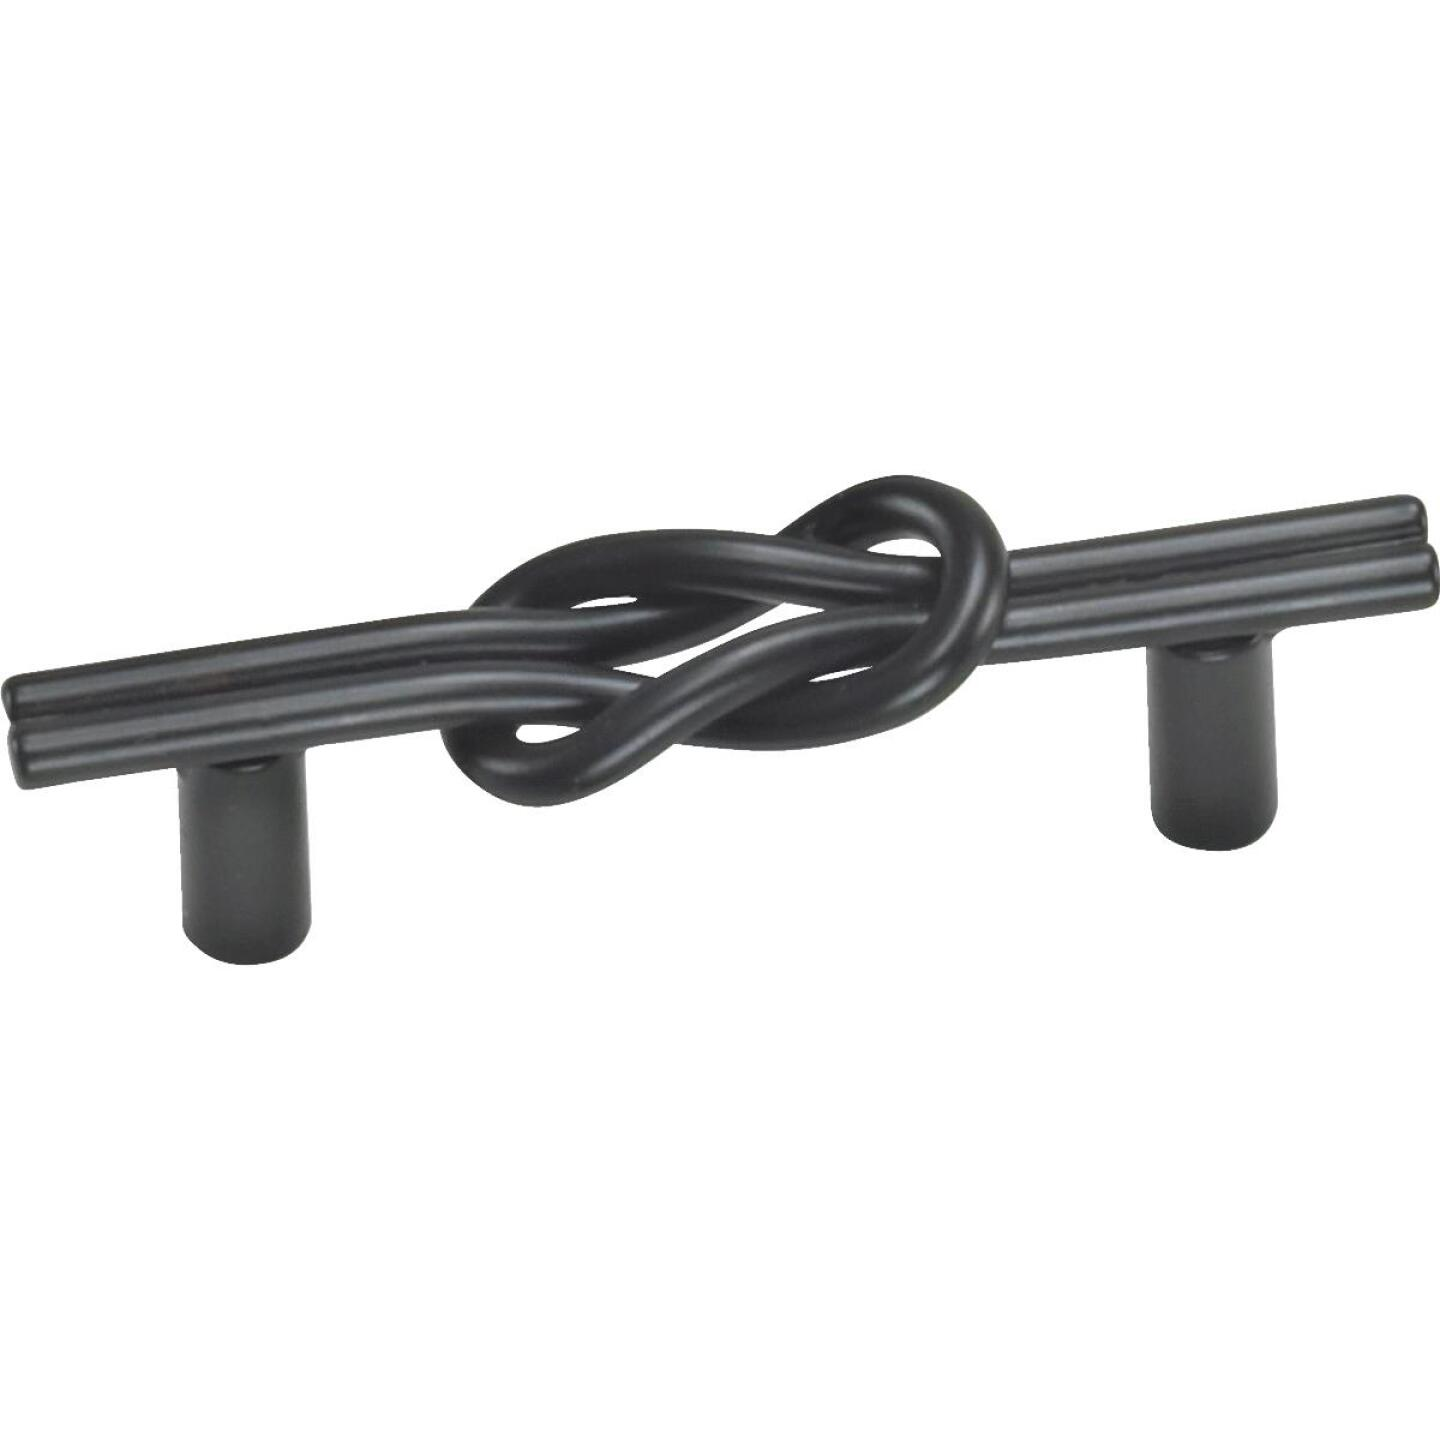 Laurey Black Matte Nantucket Center Knot 3 In. Cabinet Pull Image 1